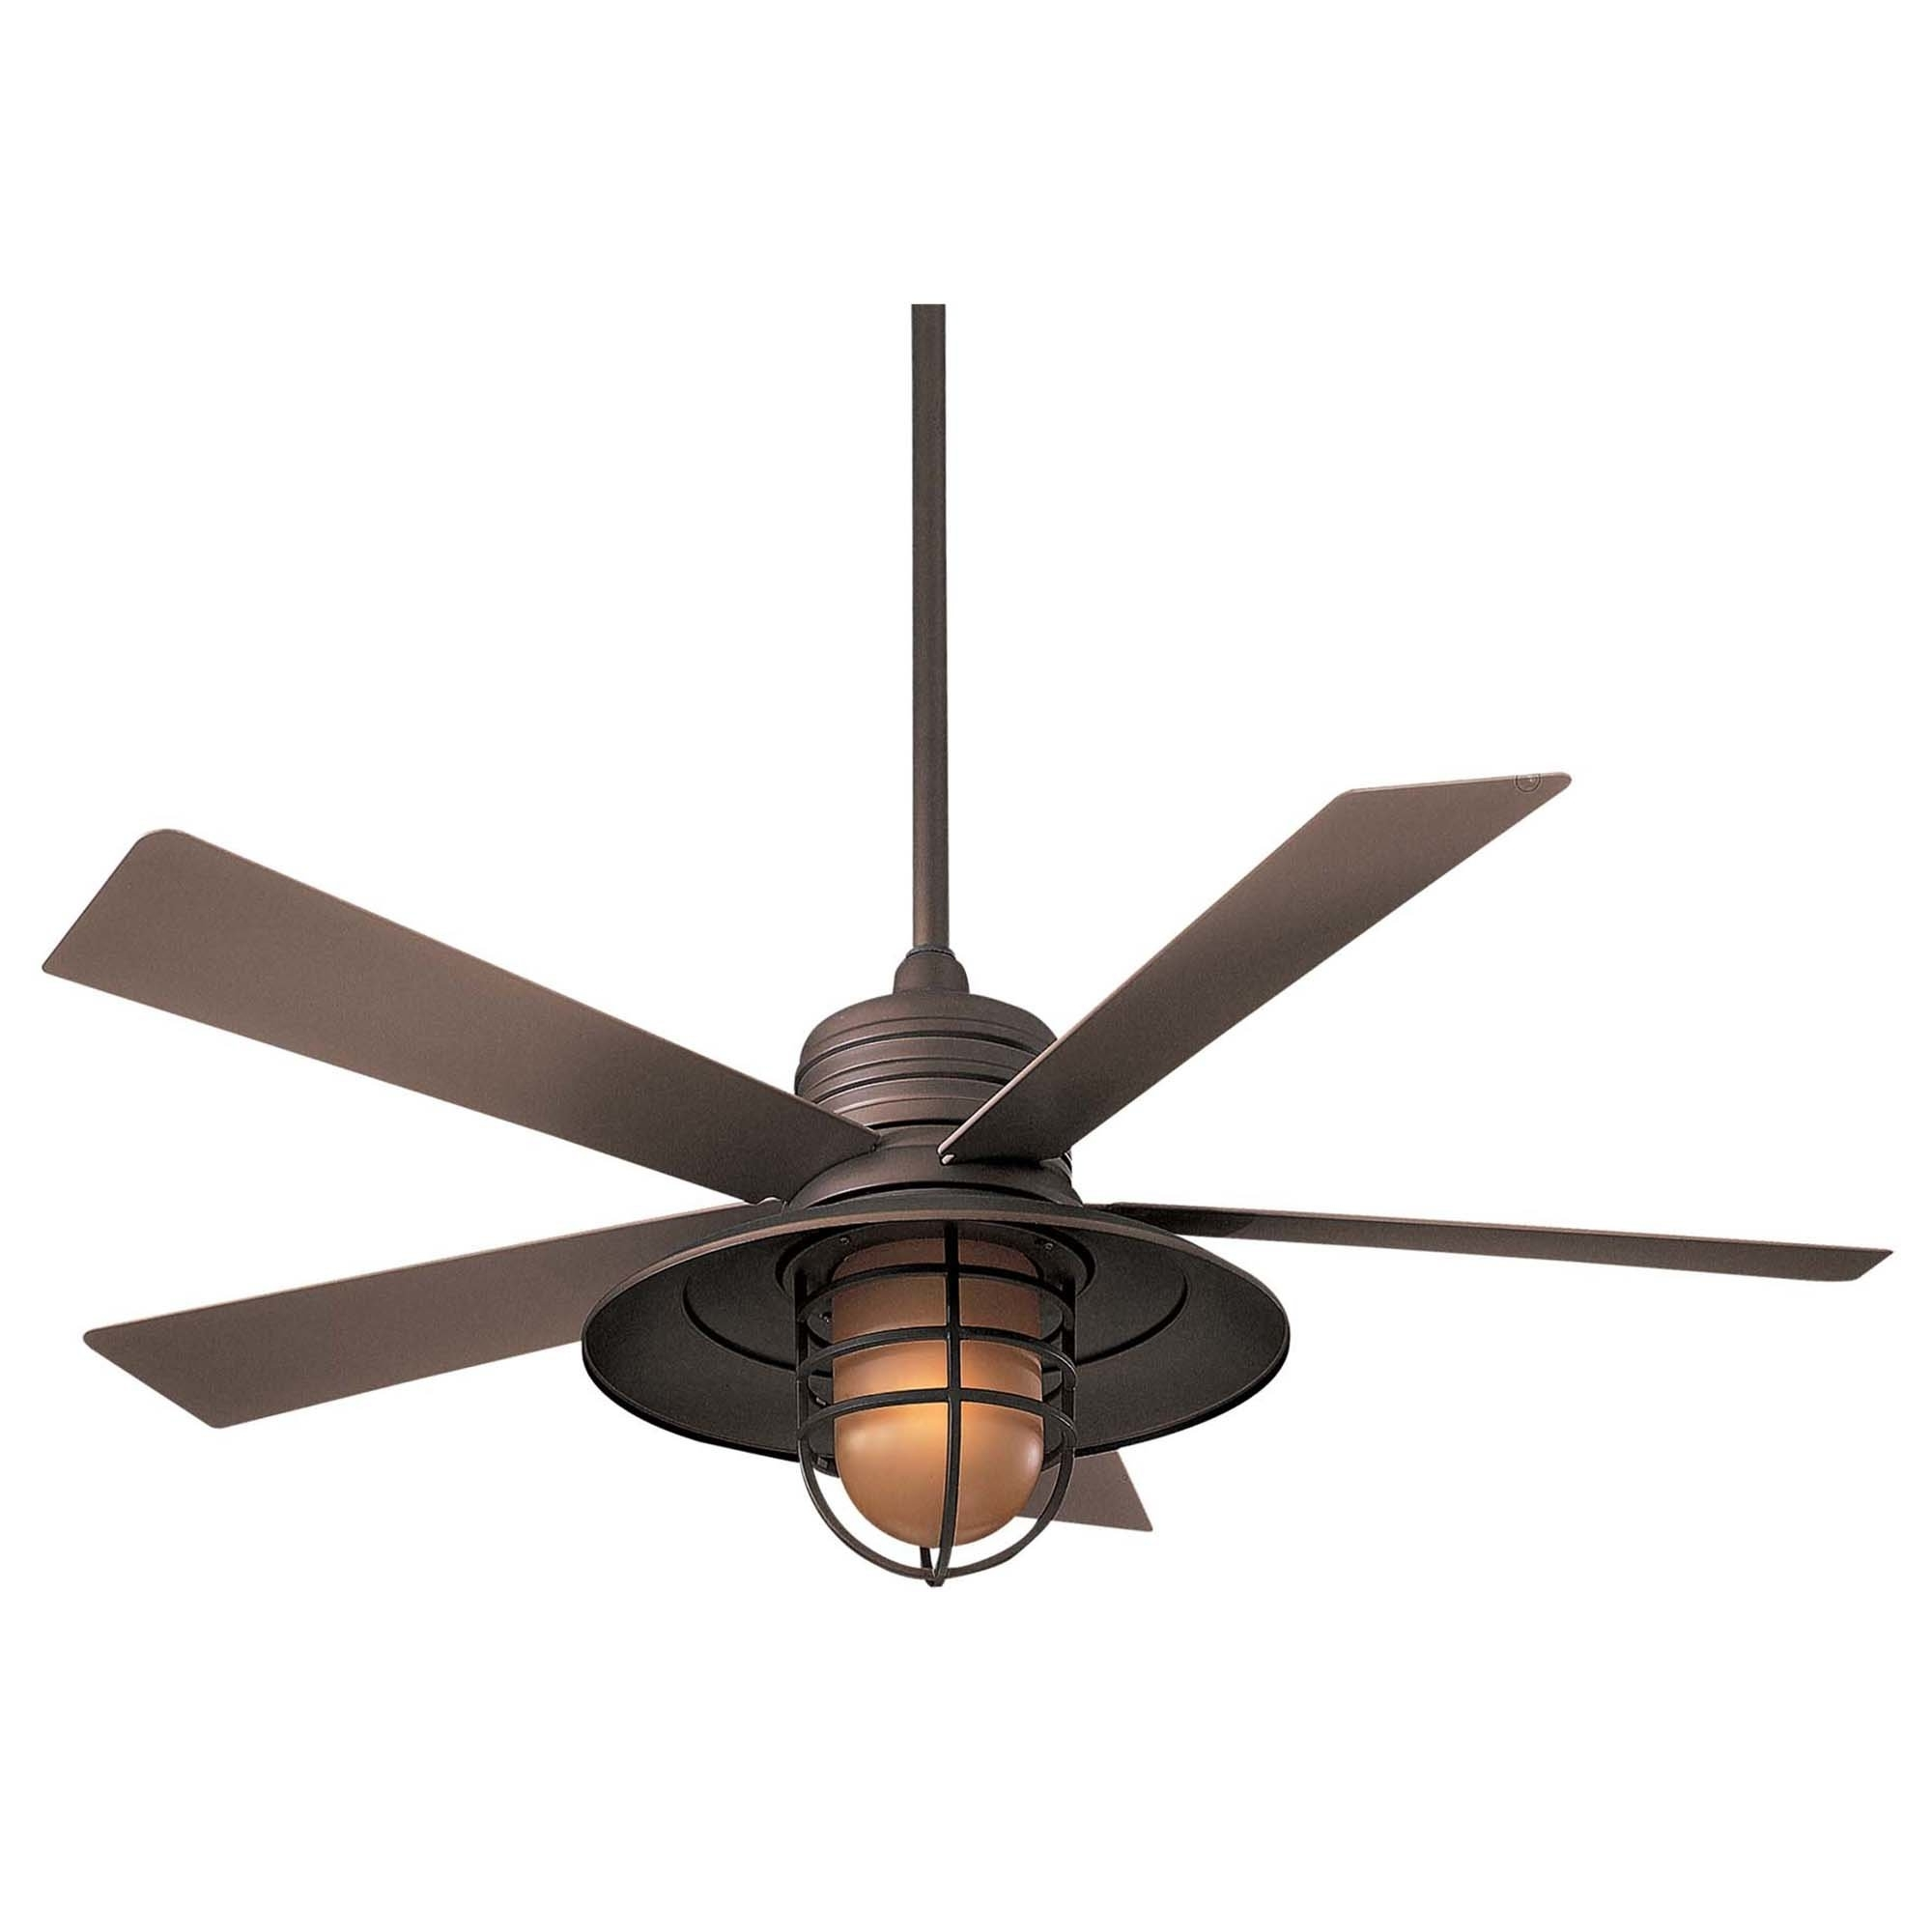 "Minka Aire 54"" Rainman 5 Blade Outdoor Led Ceiling Fan & Reviews Pertaining To Most Recently Released Wayfair Outdoor Ceiling Fans With Lights (View 5 of 20)"